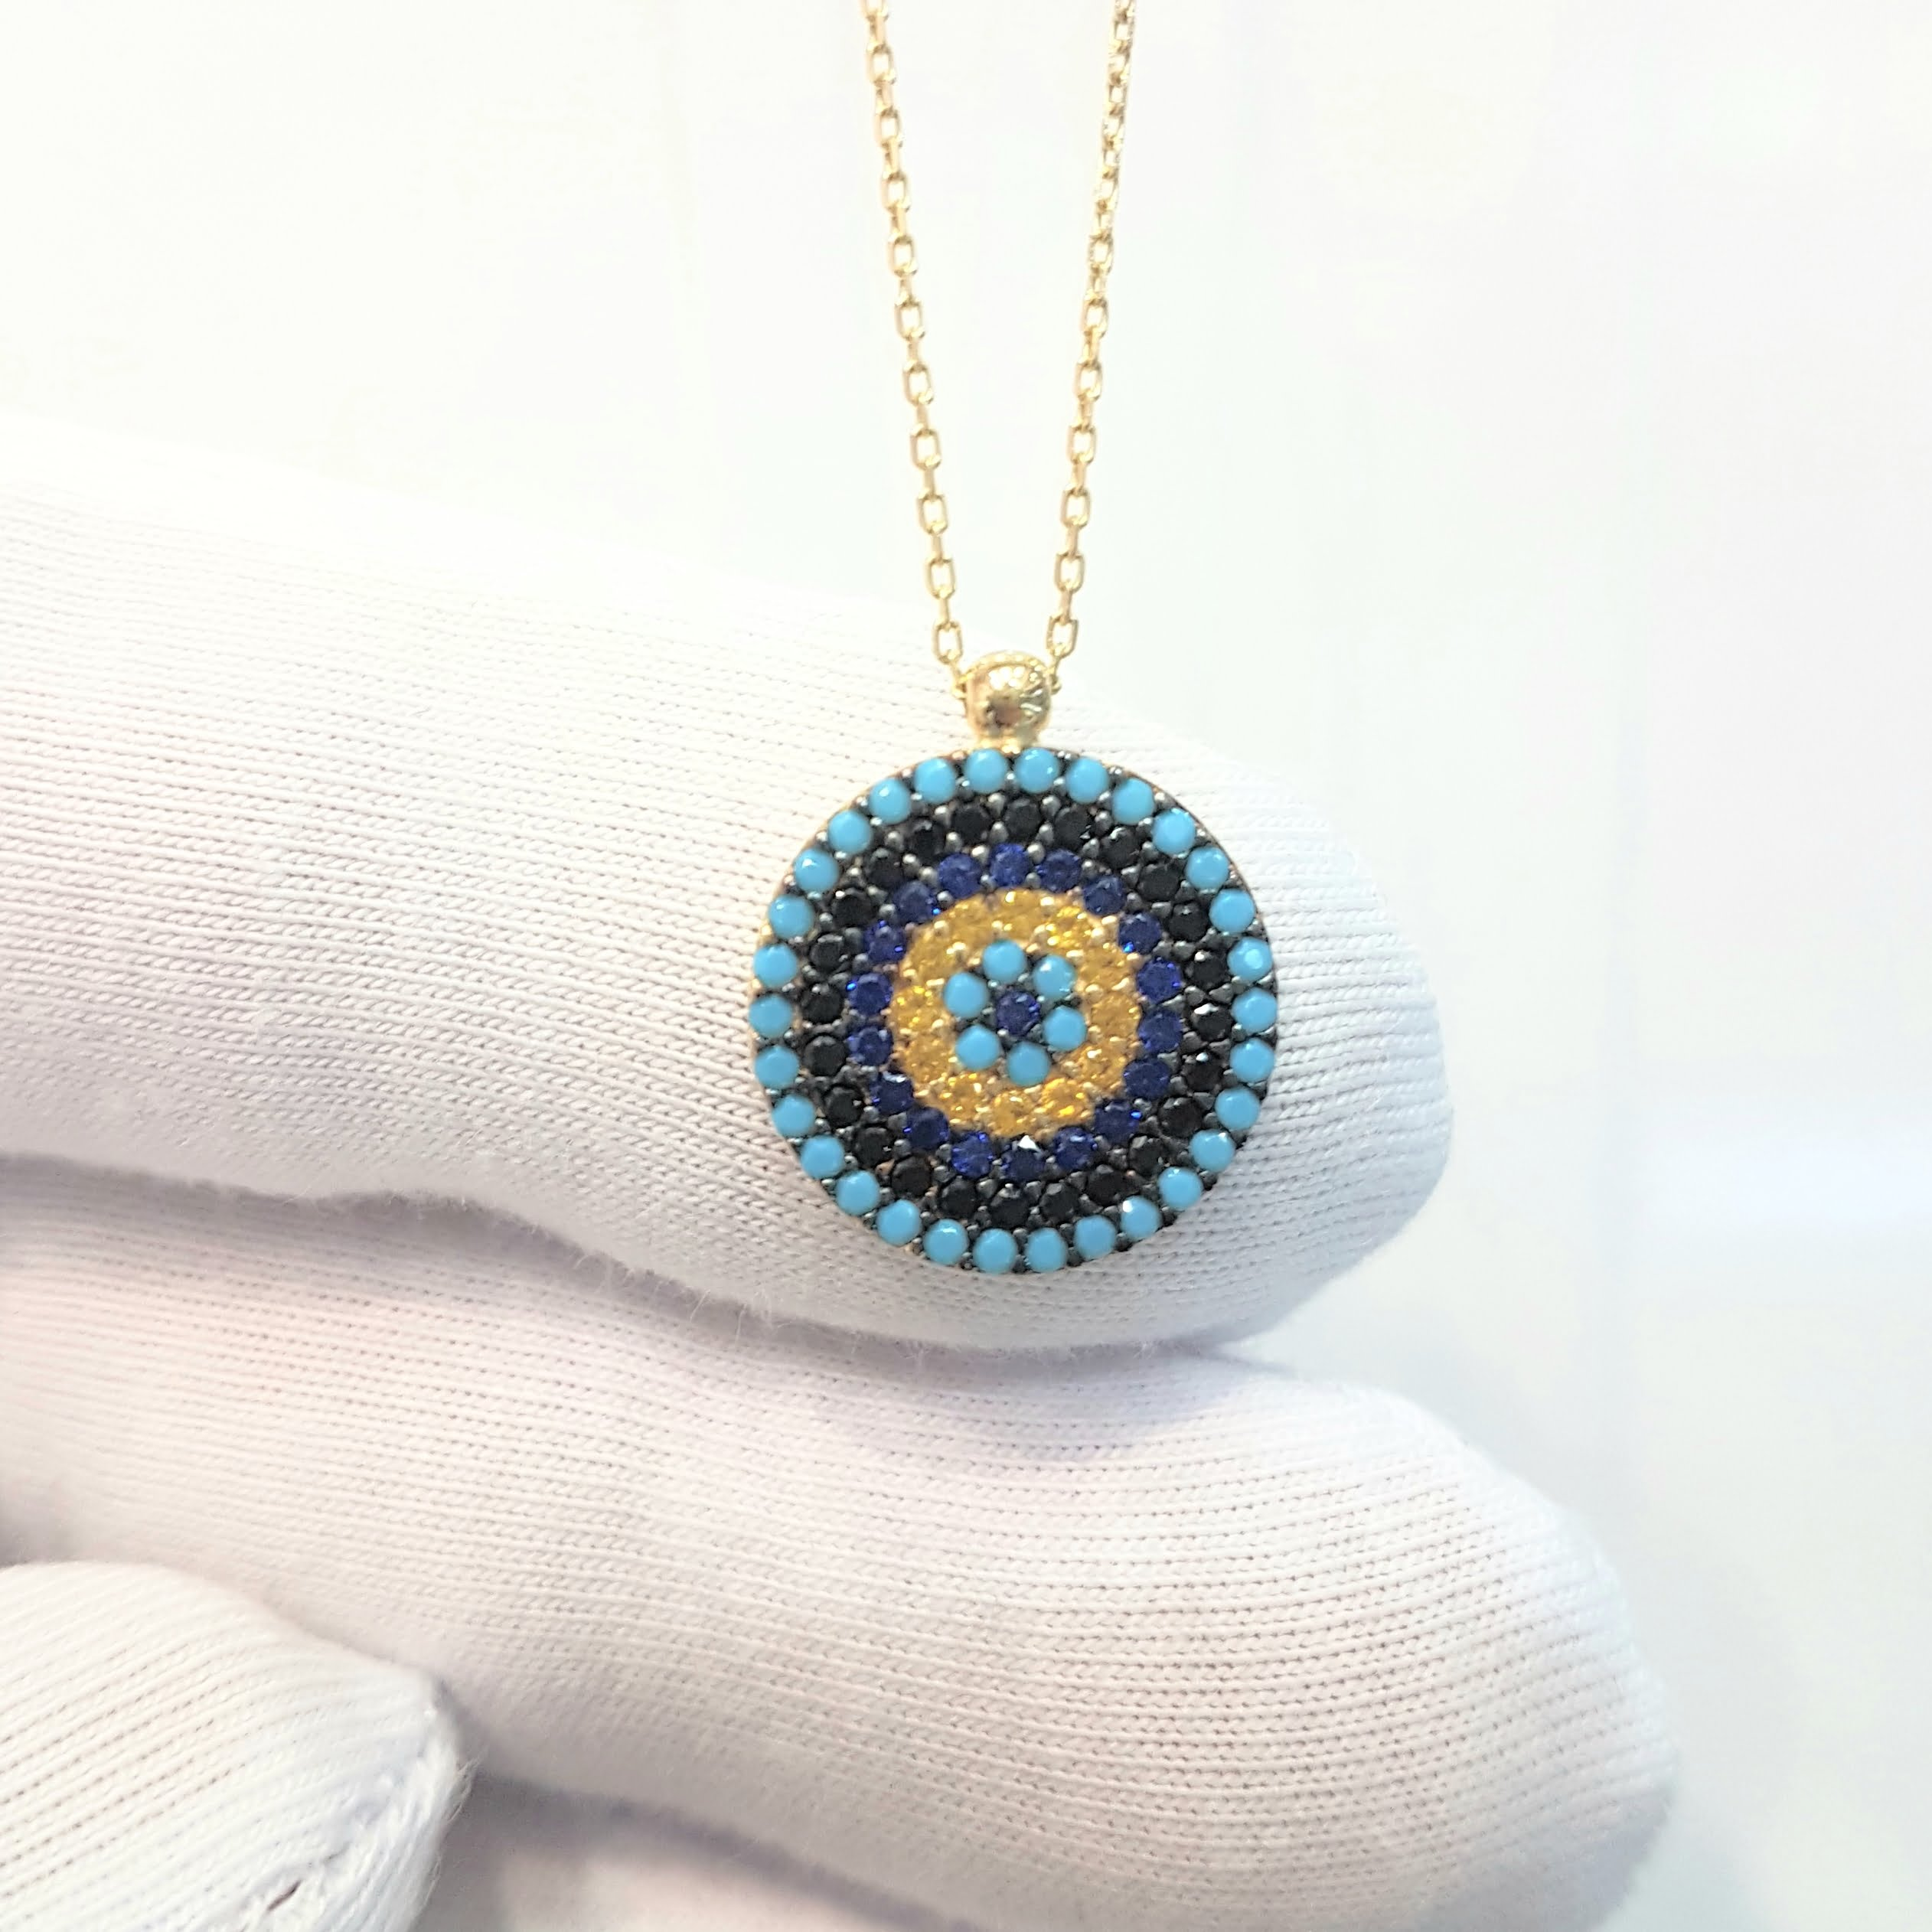 Eye Catching 14K  Modern  Circle Necklace With Colourful Zirconia Stones